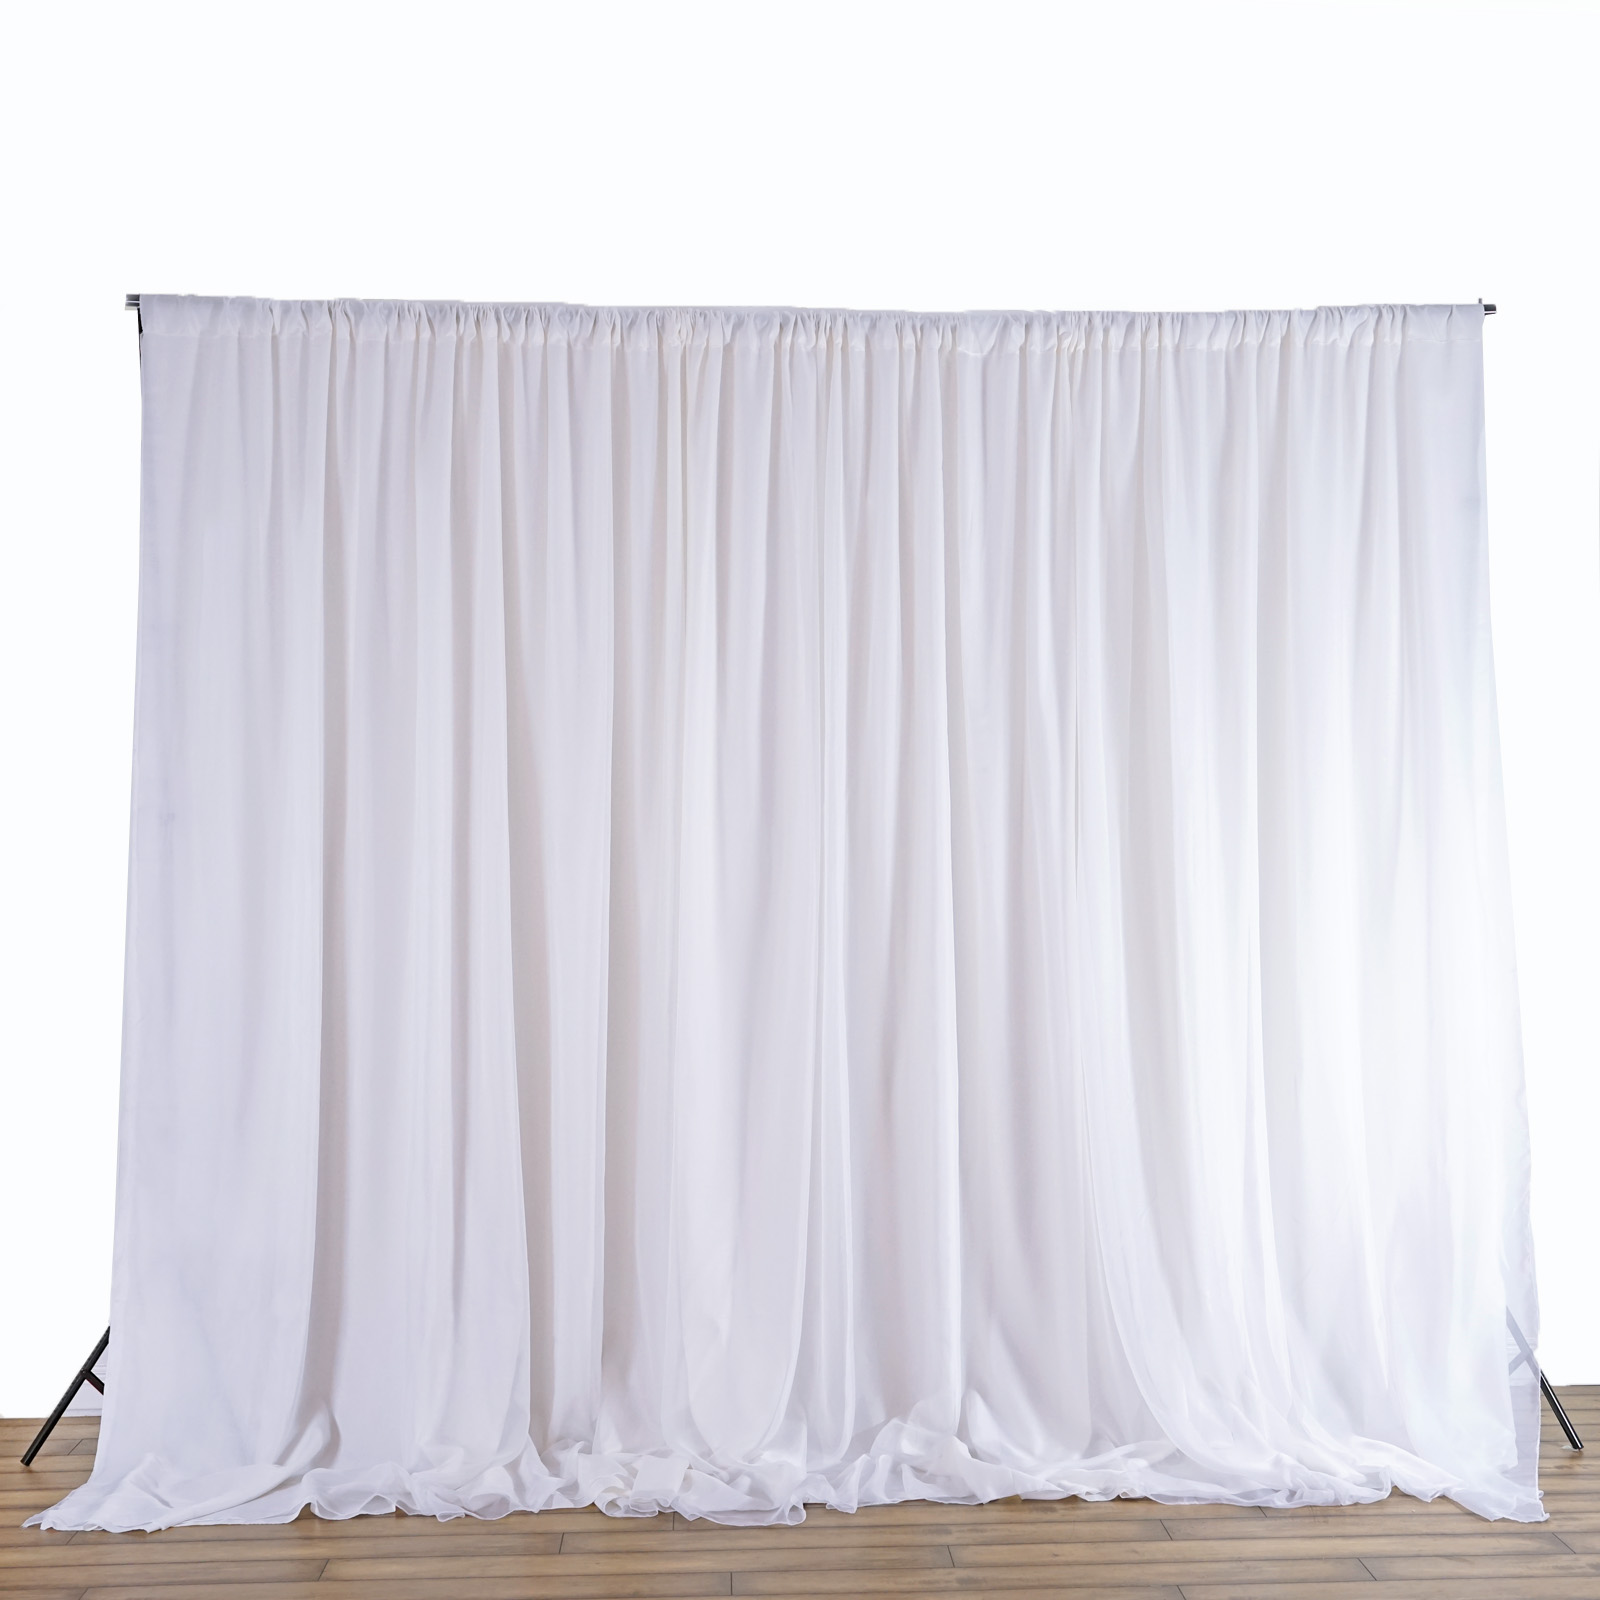 20ft x 8ft white professional backdrop photo background for Backdrop decoration